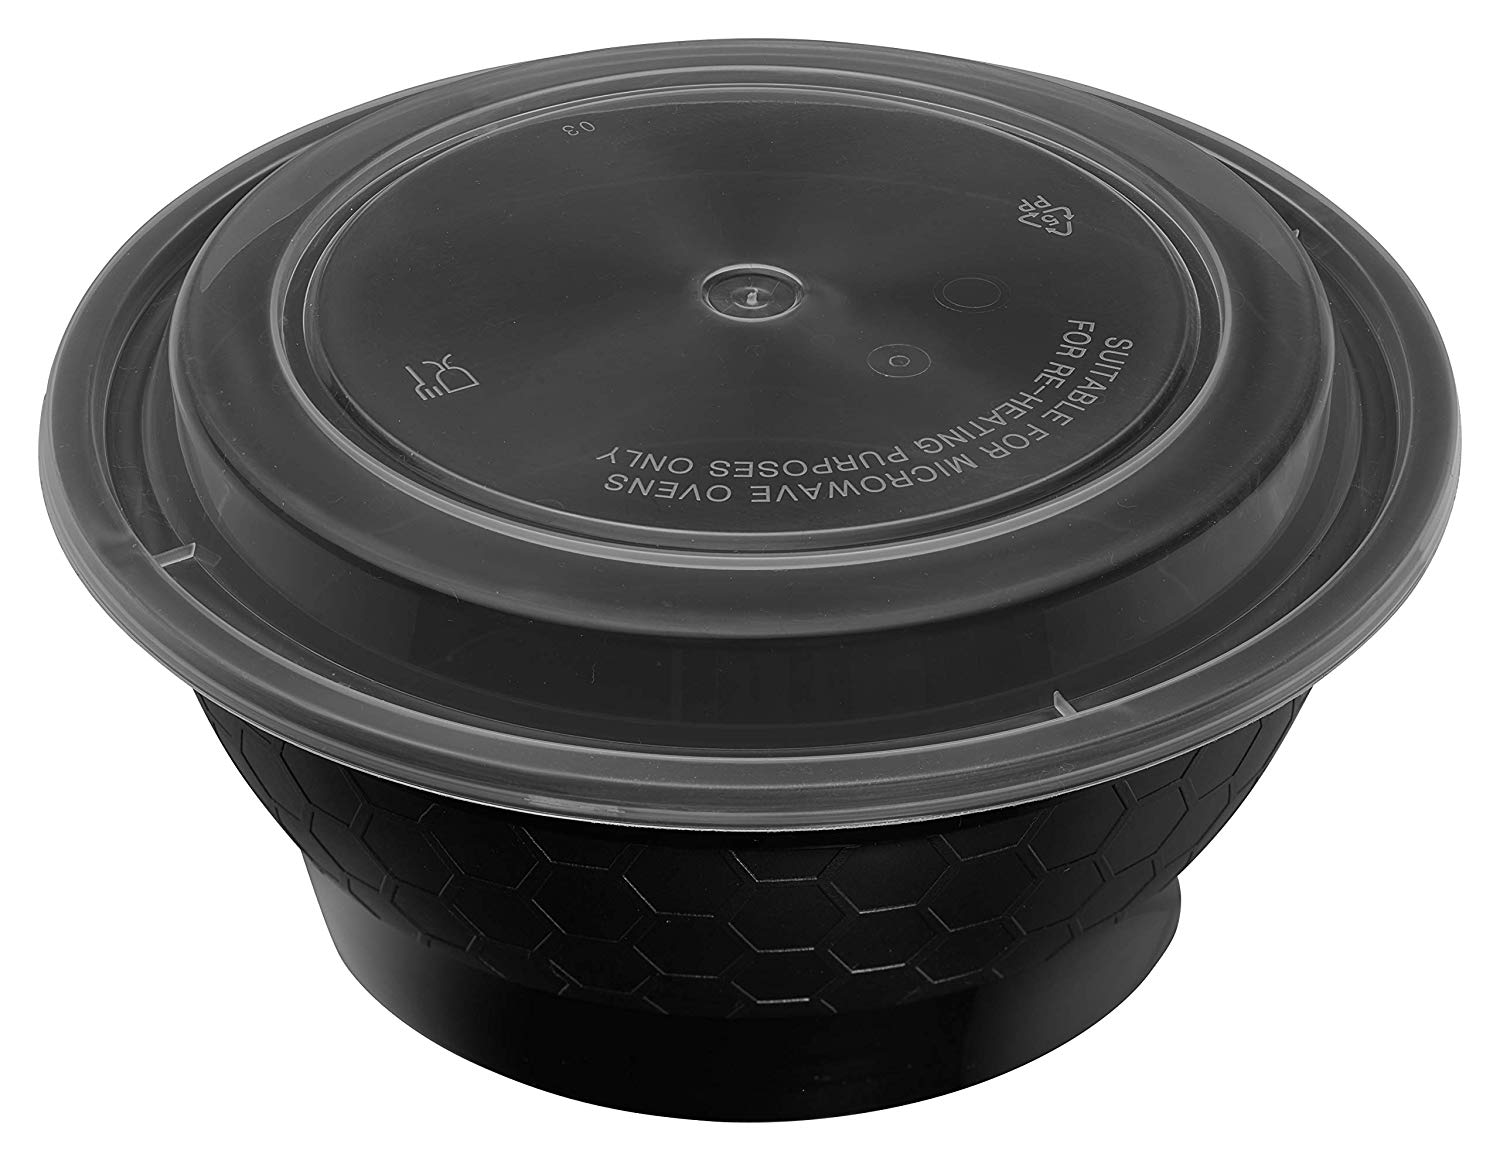 Meal Prep Containers Round Bowls with Lids